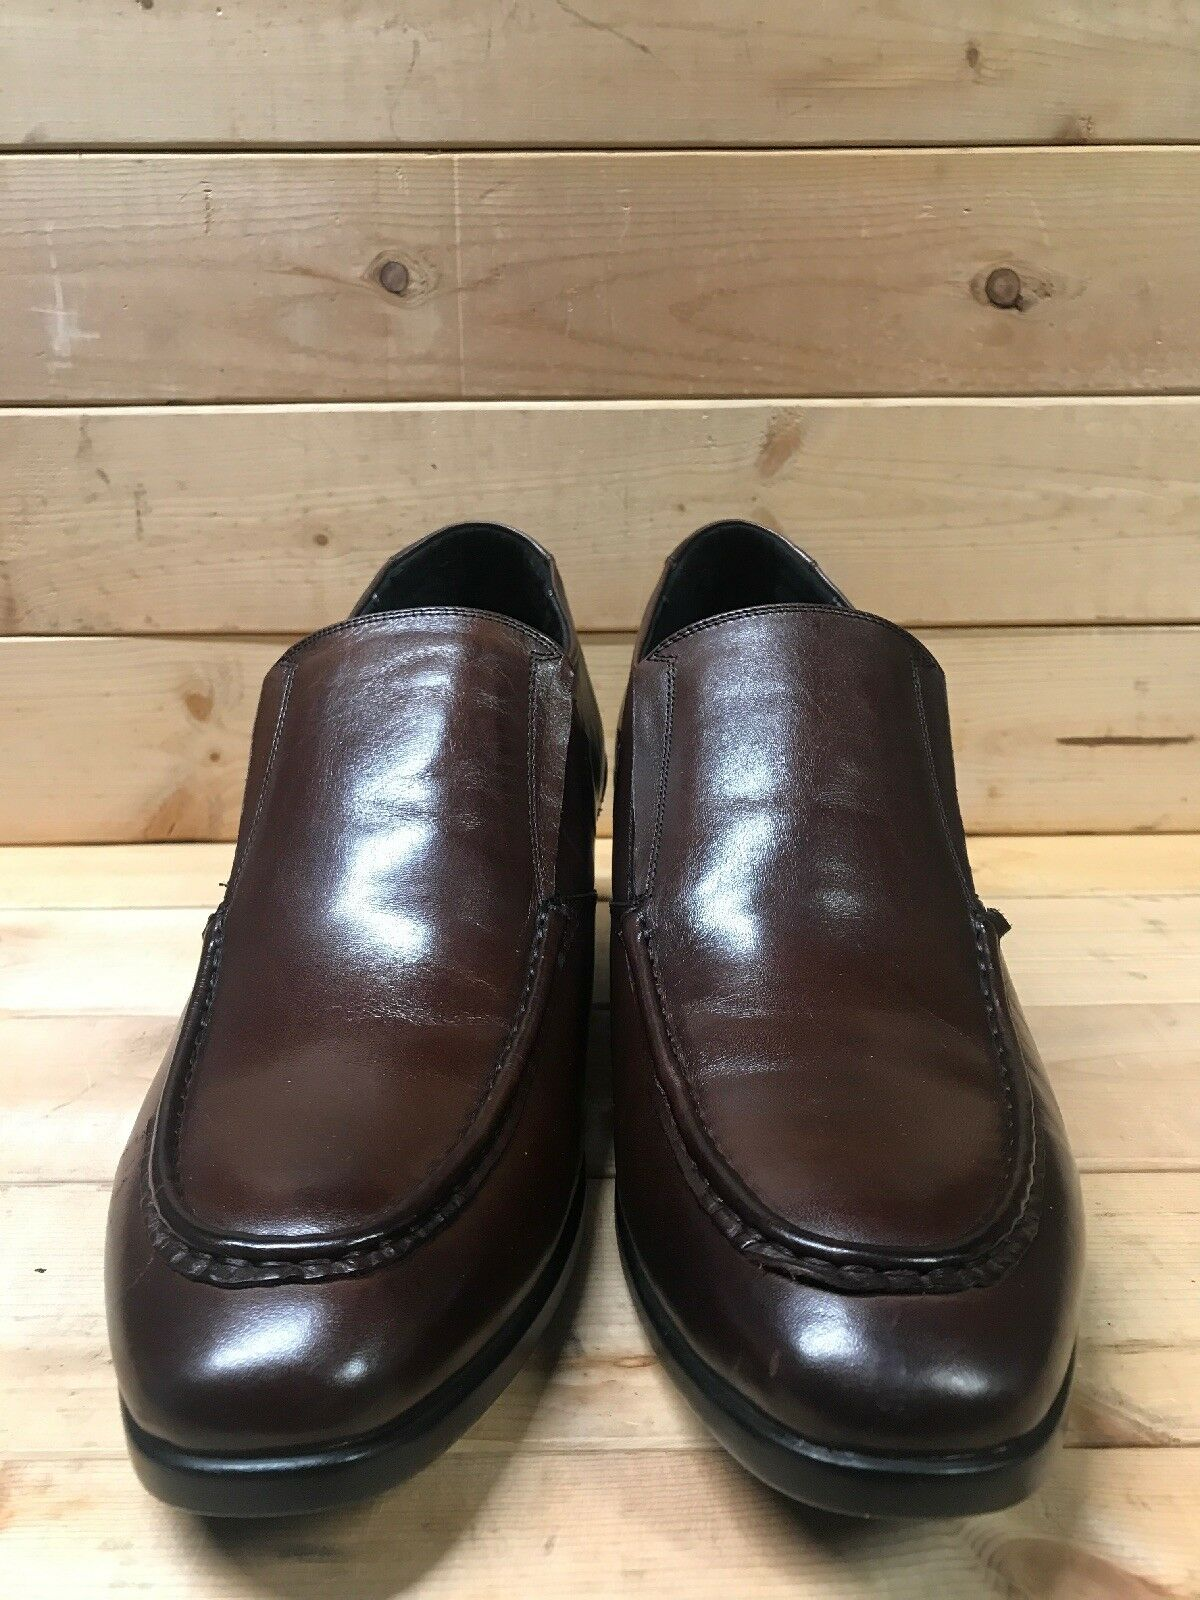 TOTO  Rise shoes for Uomo Brown Size 9 us A11352 MRP  108.00